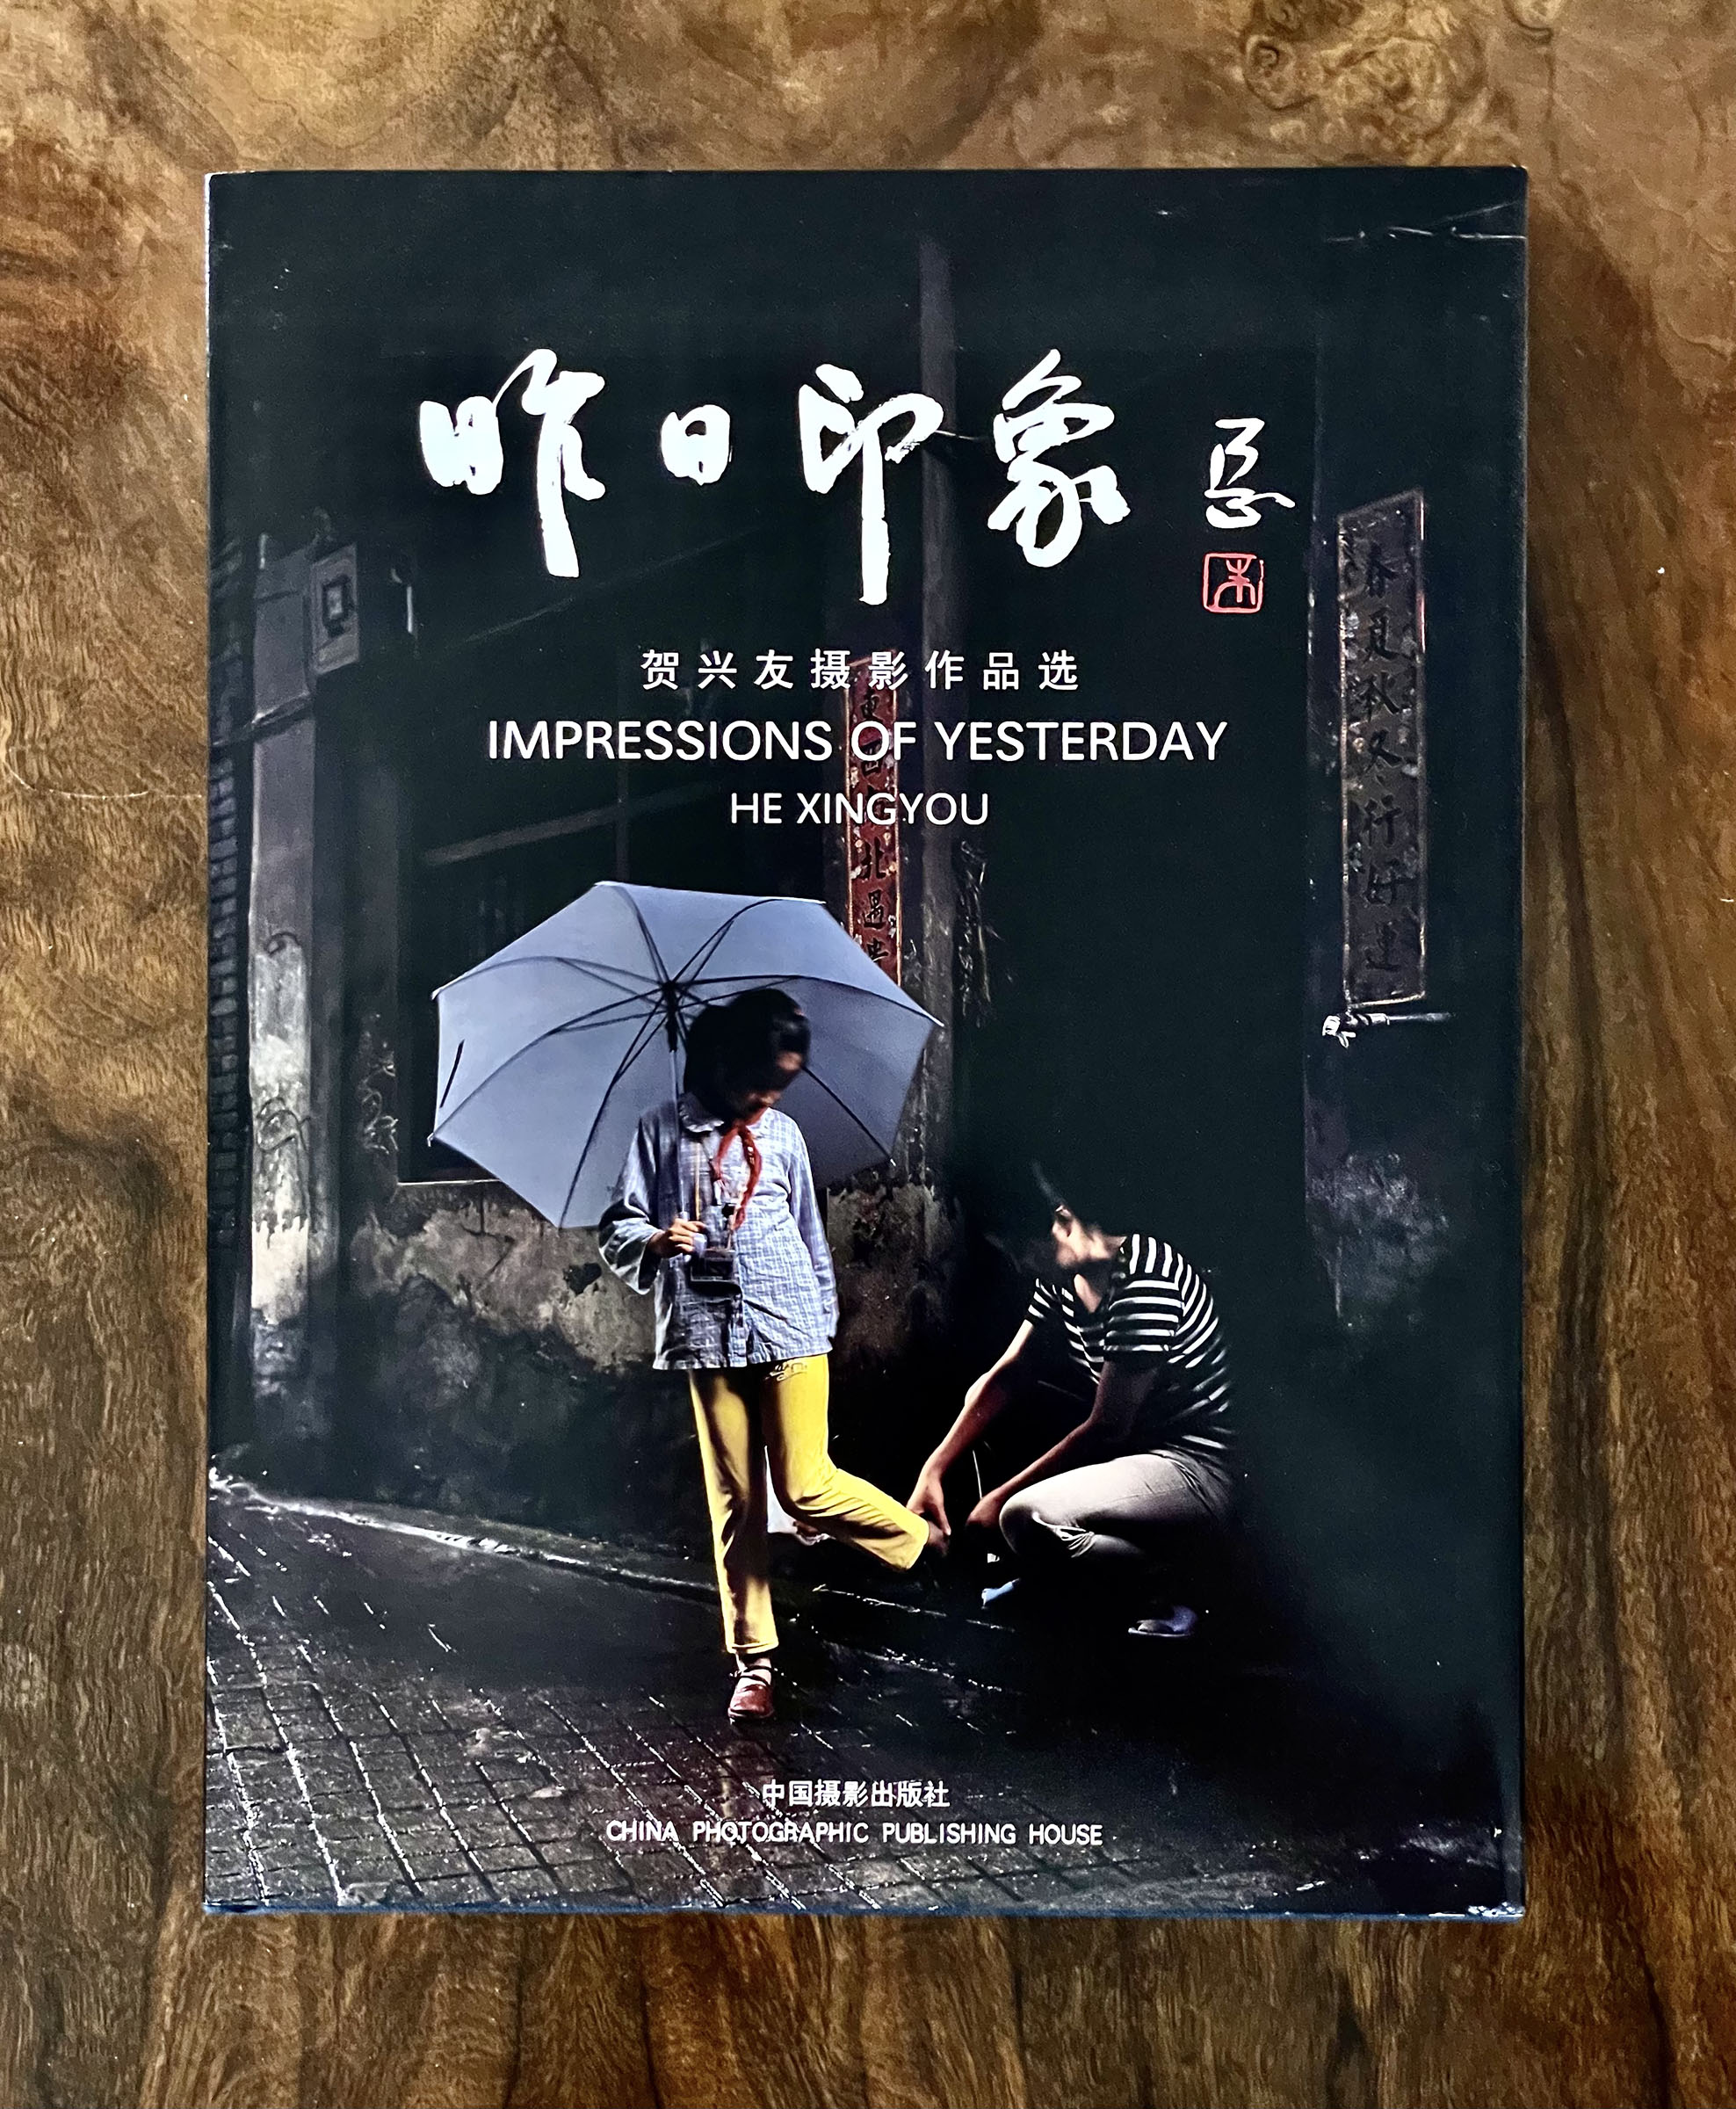 Book Cover, He Xingyou, Impressions of Yesteraday, 2004